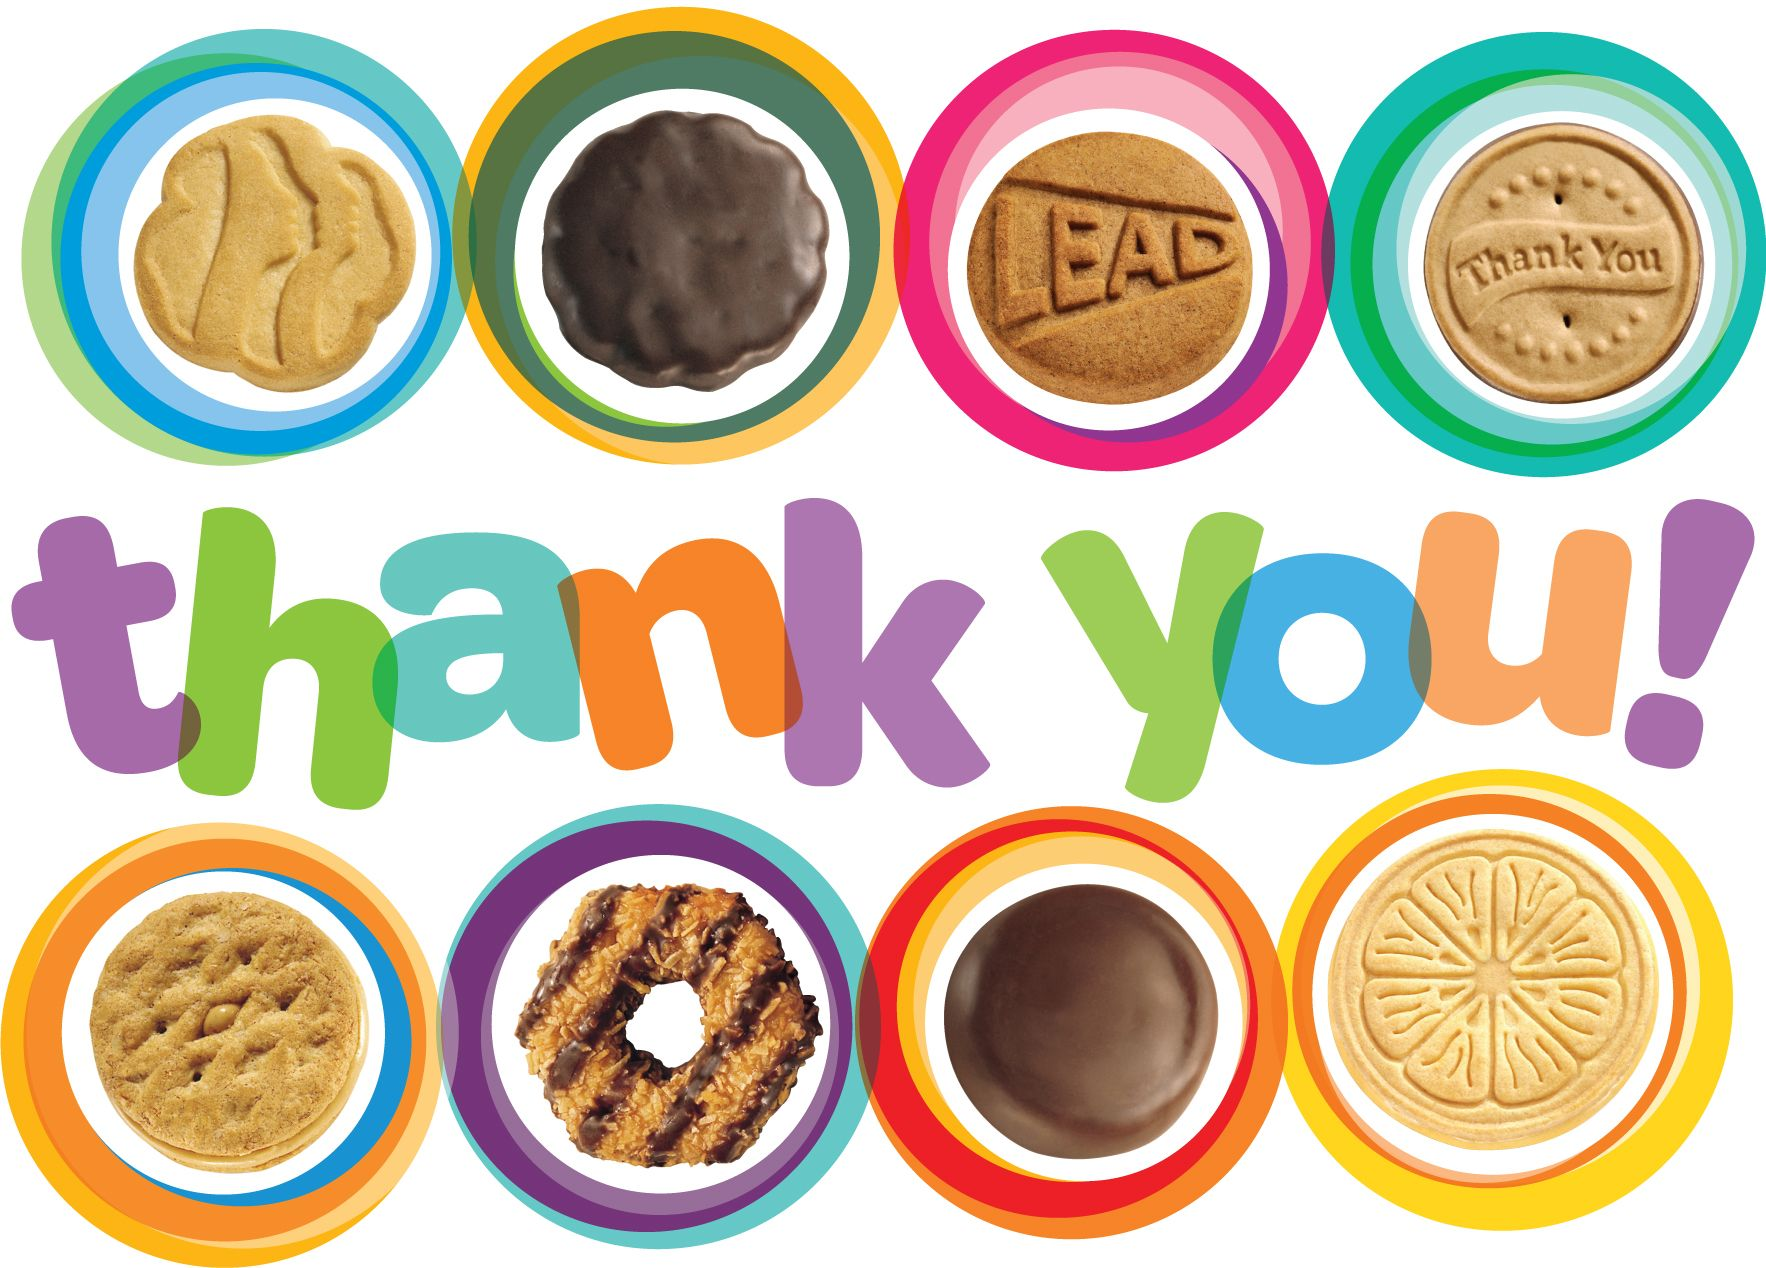 Thank You Cards Girl Scout Cookies Clip Art Clipart - Free Clipart ...